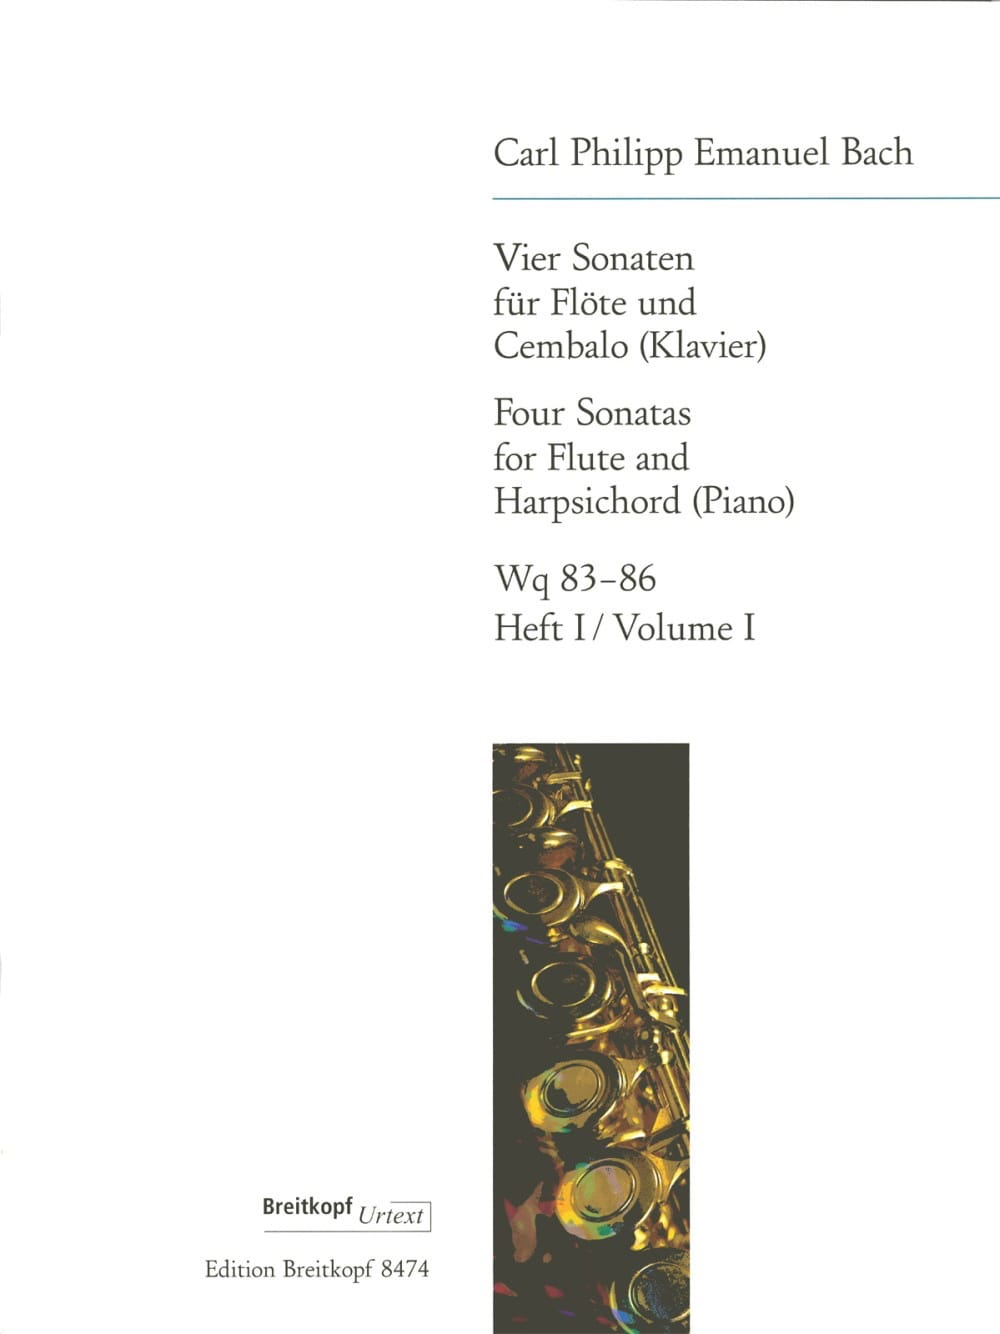 Carl Philipp Emanuel Bach - 4 Sonaten - Heft 1: Wq 83-84 - Flute Cembalo - Partition - di-arezzo.co.uk